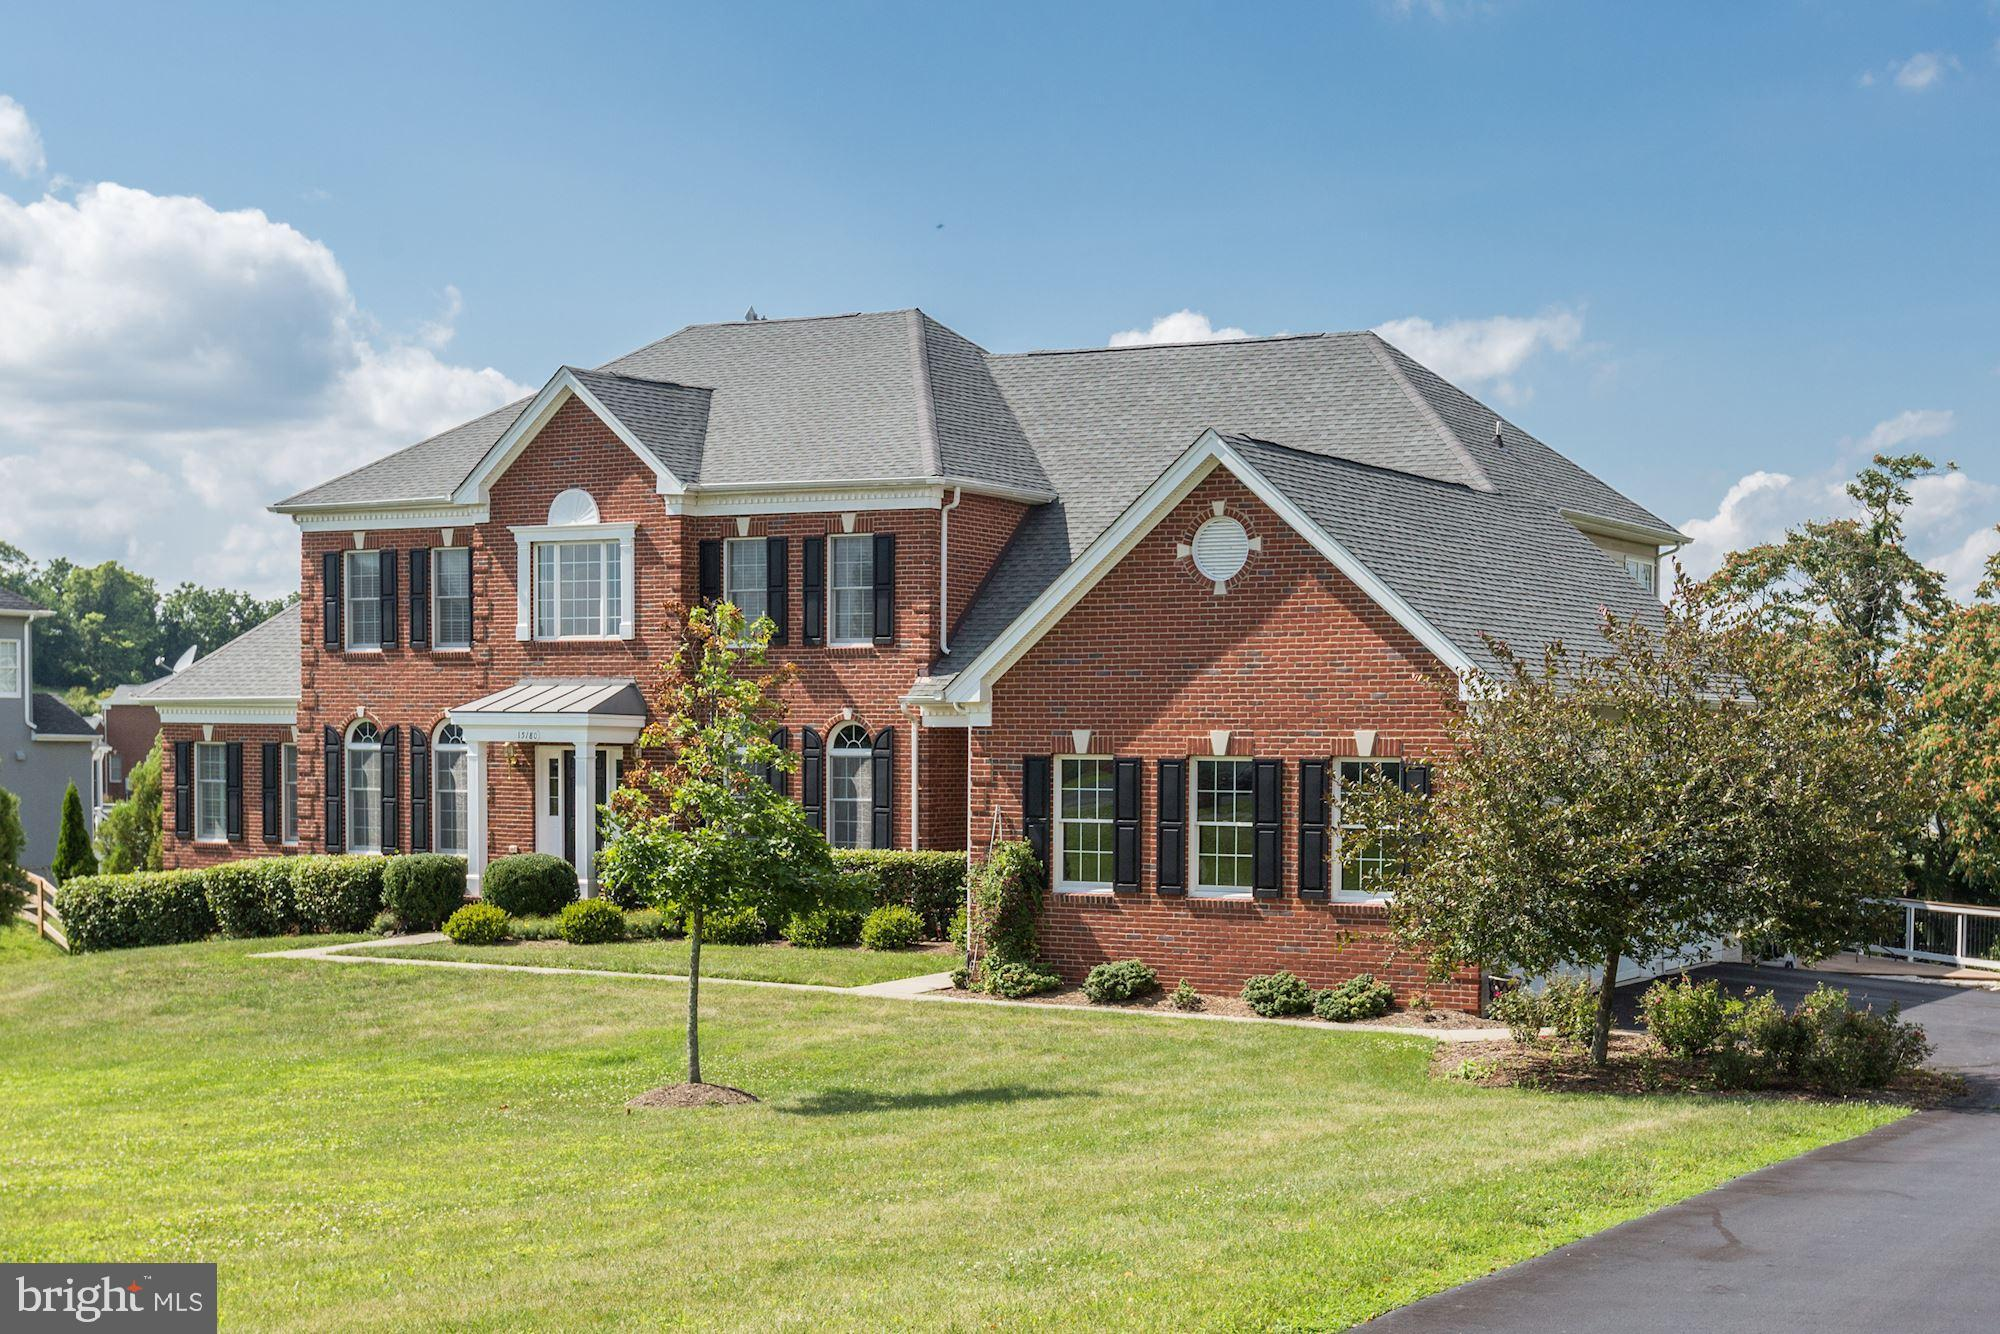 15180 BANKFIELD DRIVE, WATERFORD, VA 20197